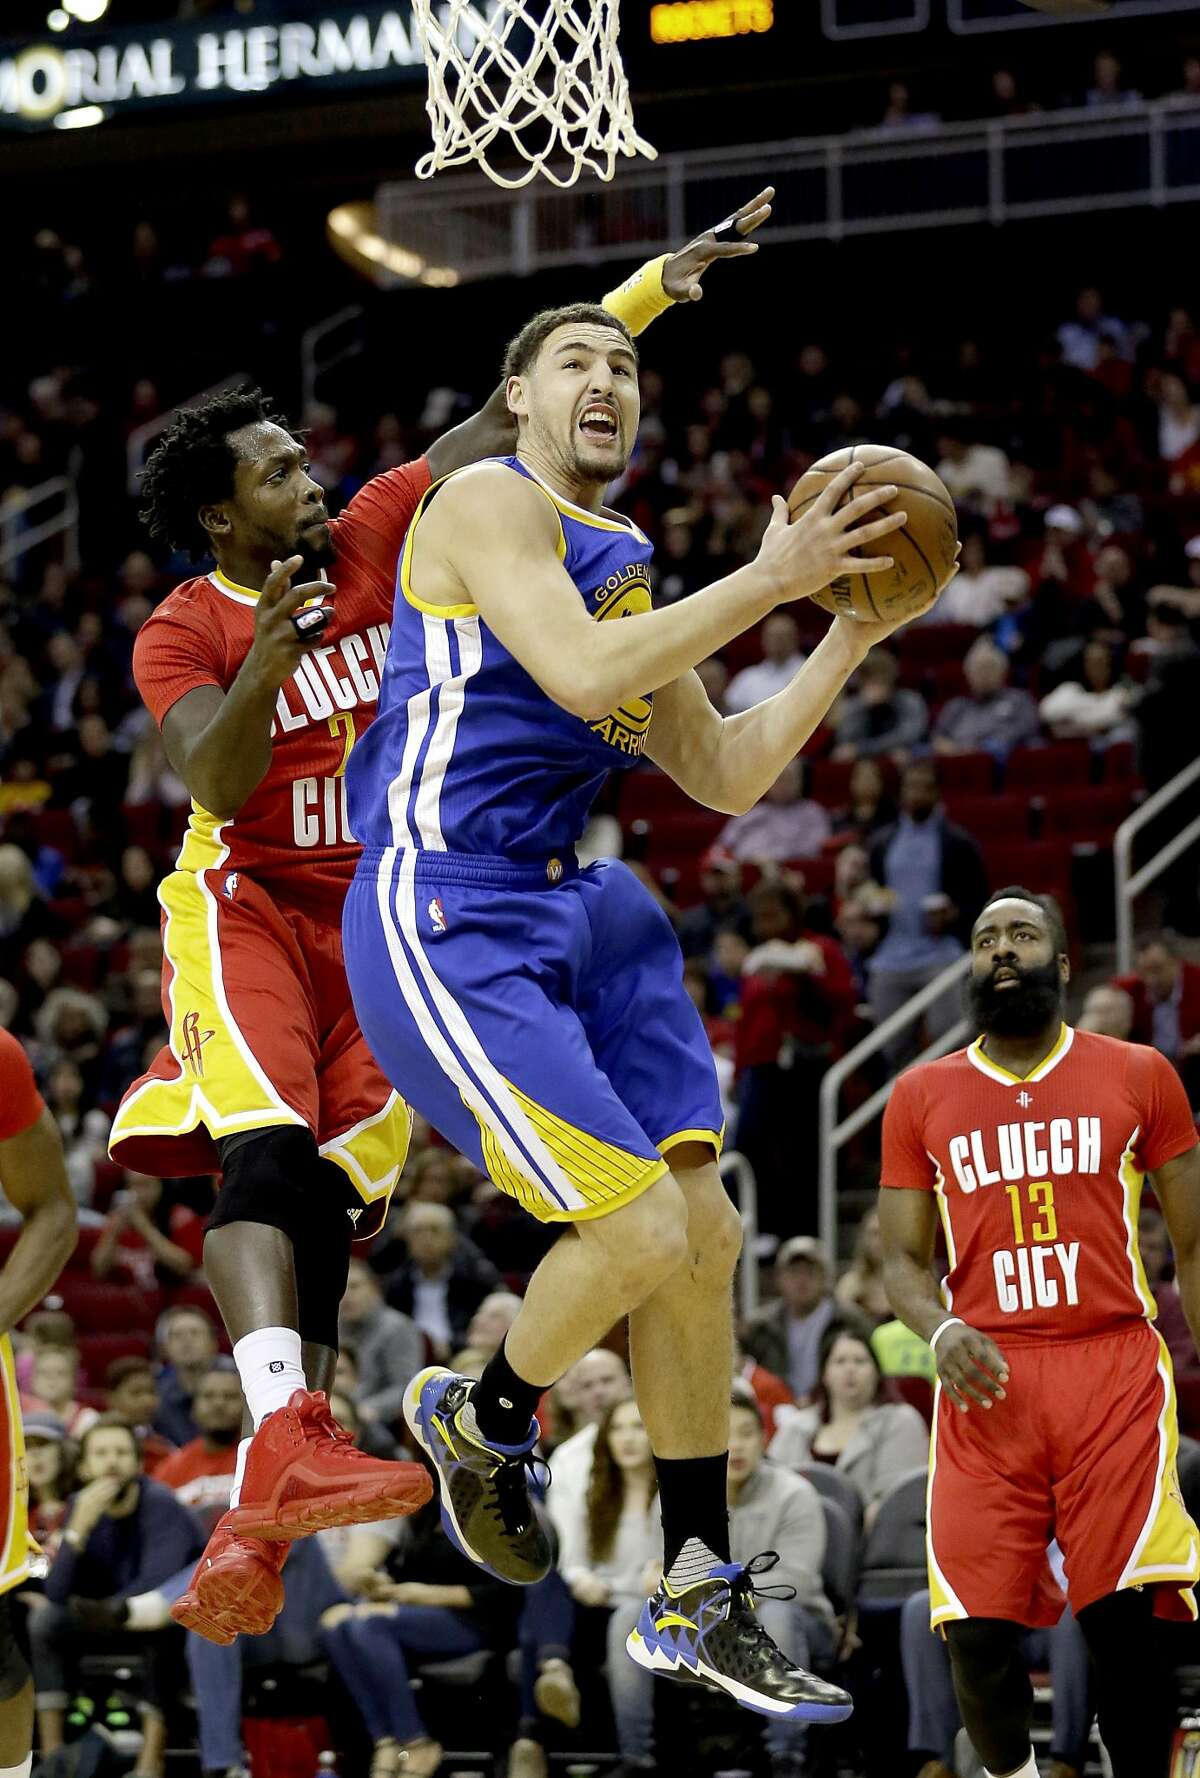 Golden State Warriors' Klay Thompson, front right, goes up to shoot as Houston Rockets' Patrick Beverley (2) defends during the first half of an NBA basketball game Thursday, Dec. 31, 2015, in Houston. (AP Photo/David J. Phillip)